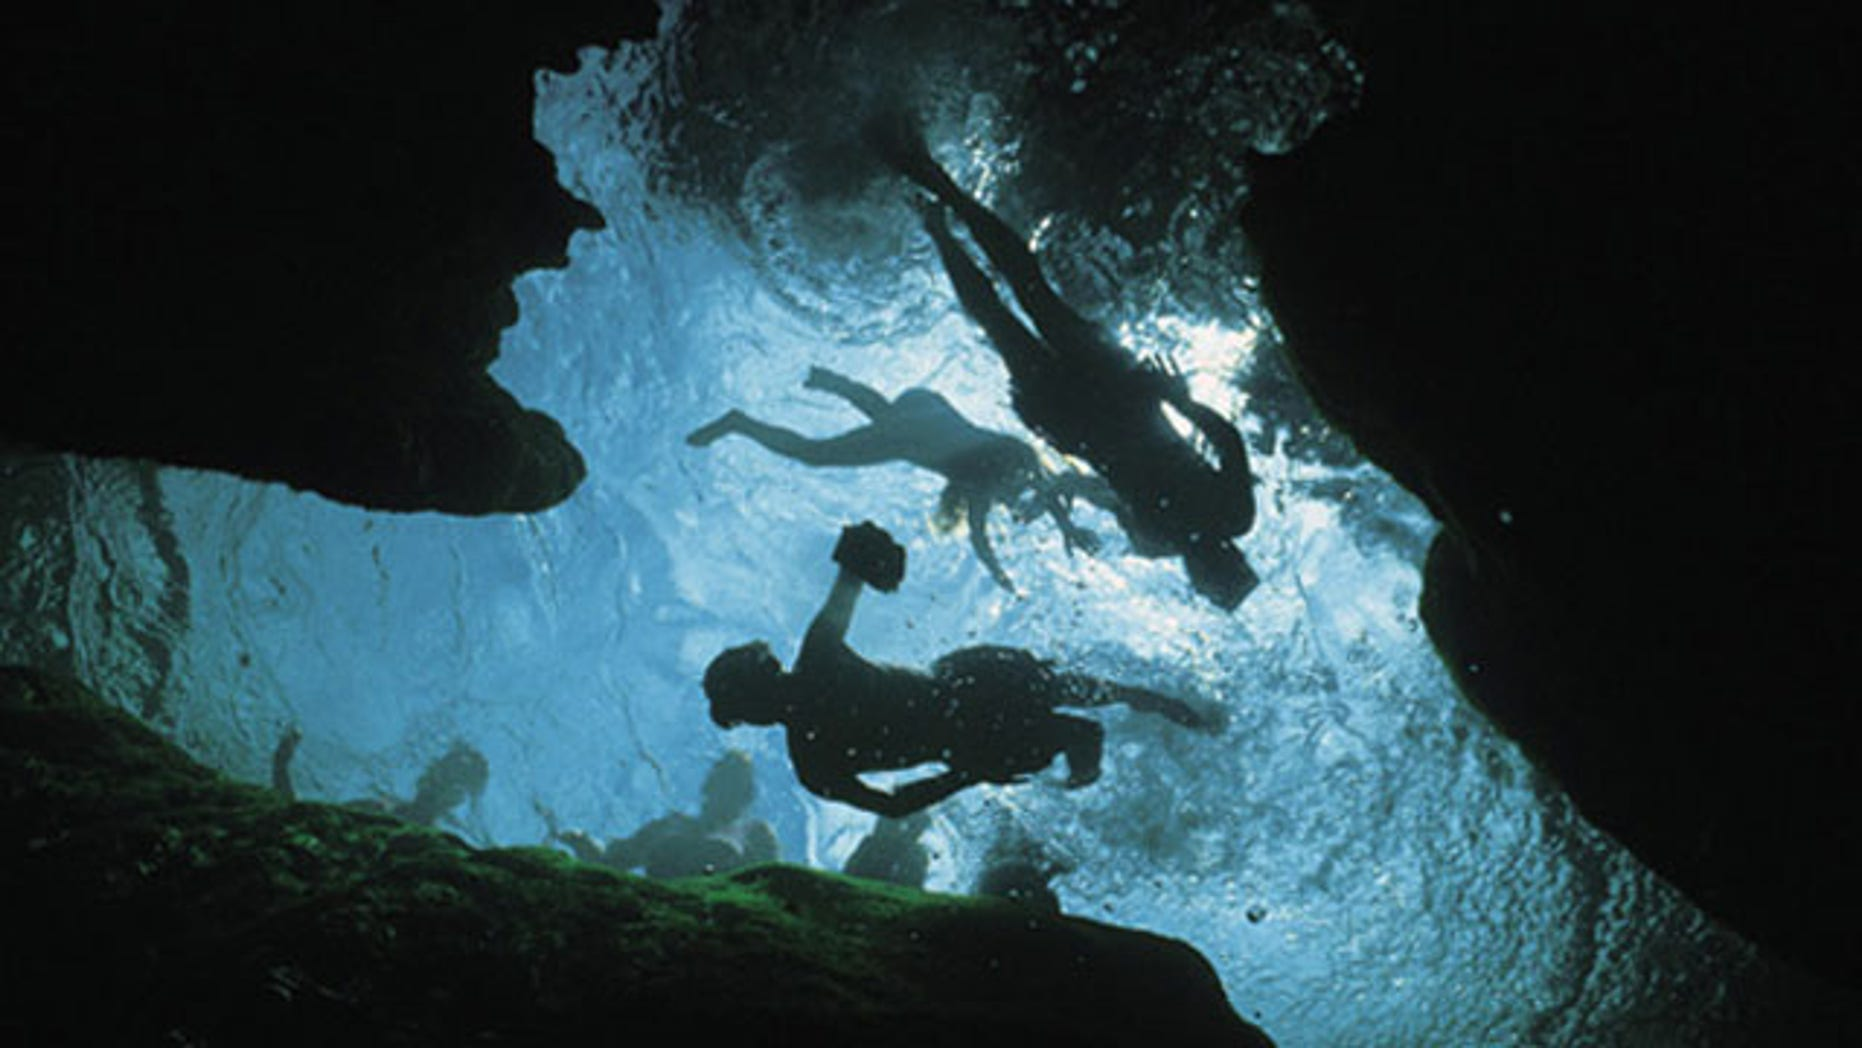 View from below of snorkelers on the surface of a spring in Wekiwa Springs State Park.